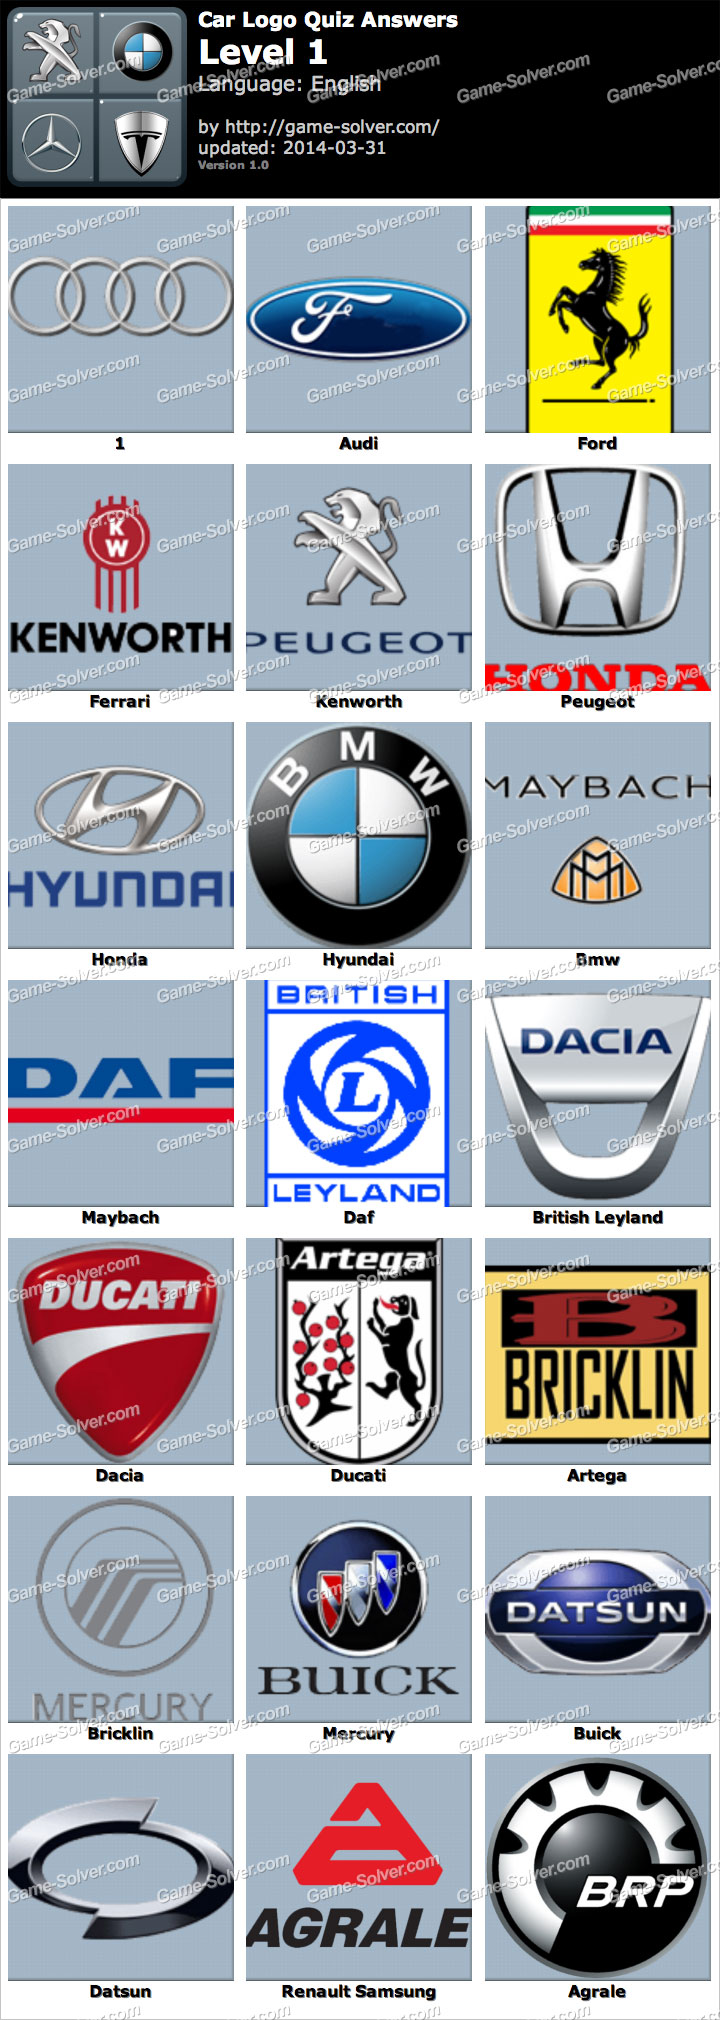 Car logo quiz answers game solver car logo quiz level 1 biocorpaavc Choice Image